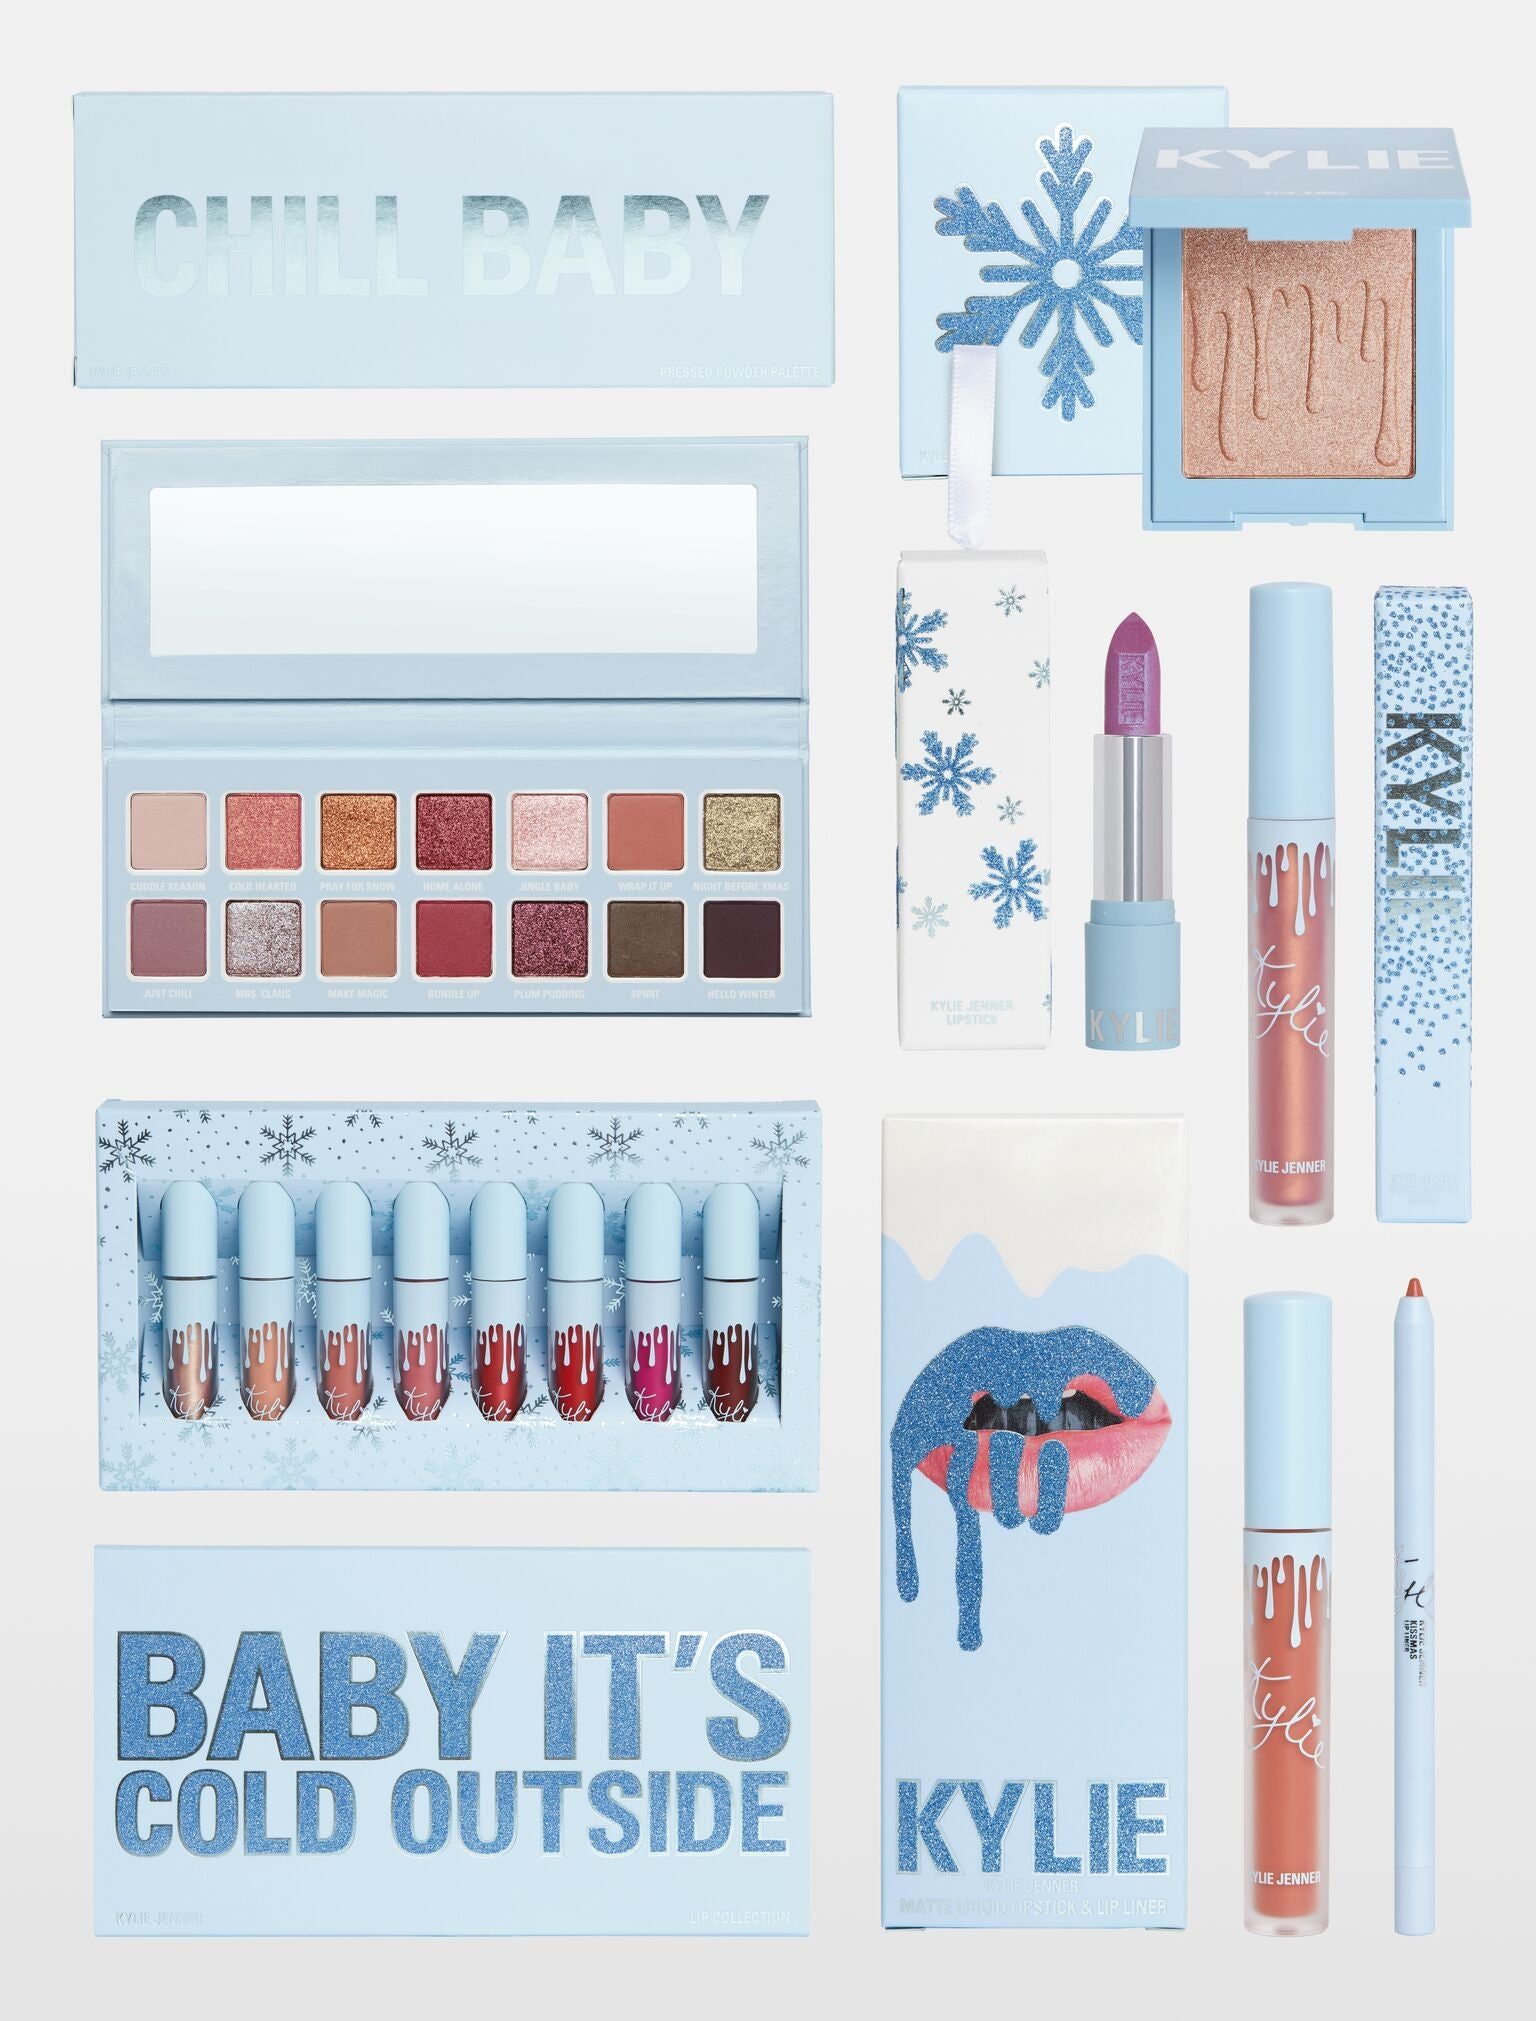 Kylie's Holiday Favorites